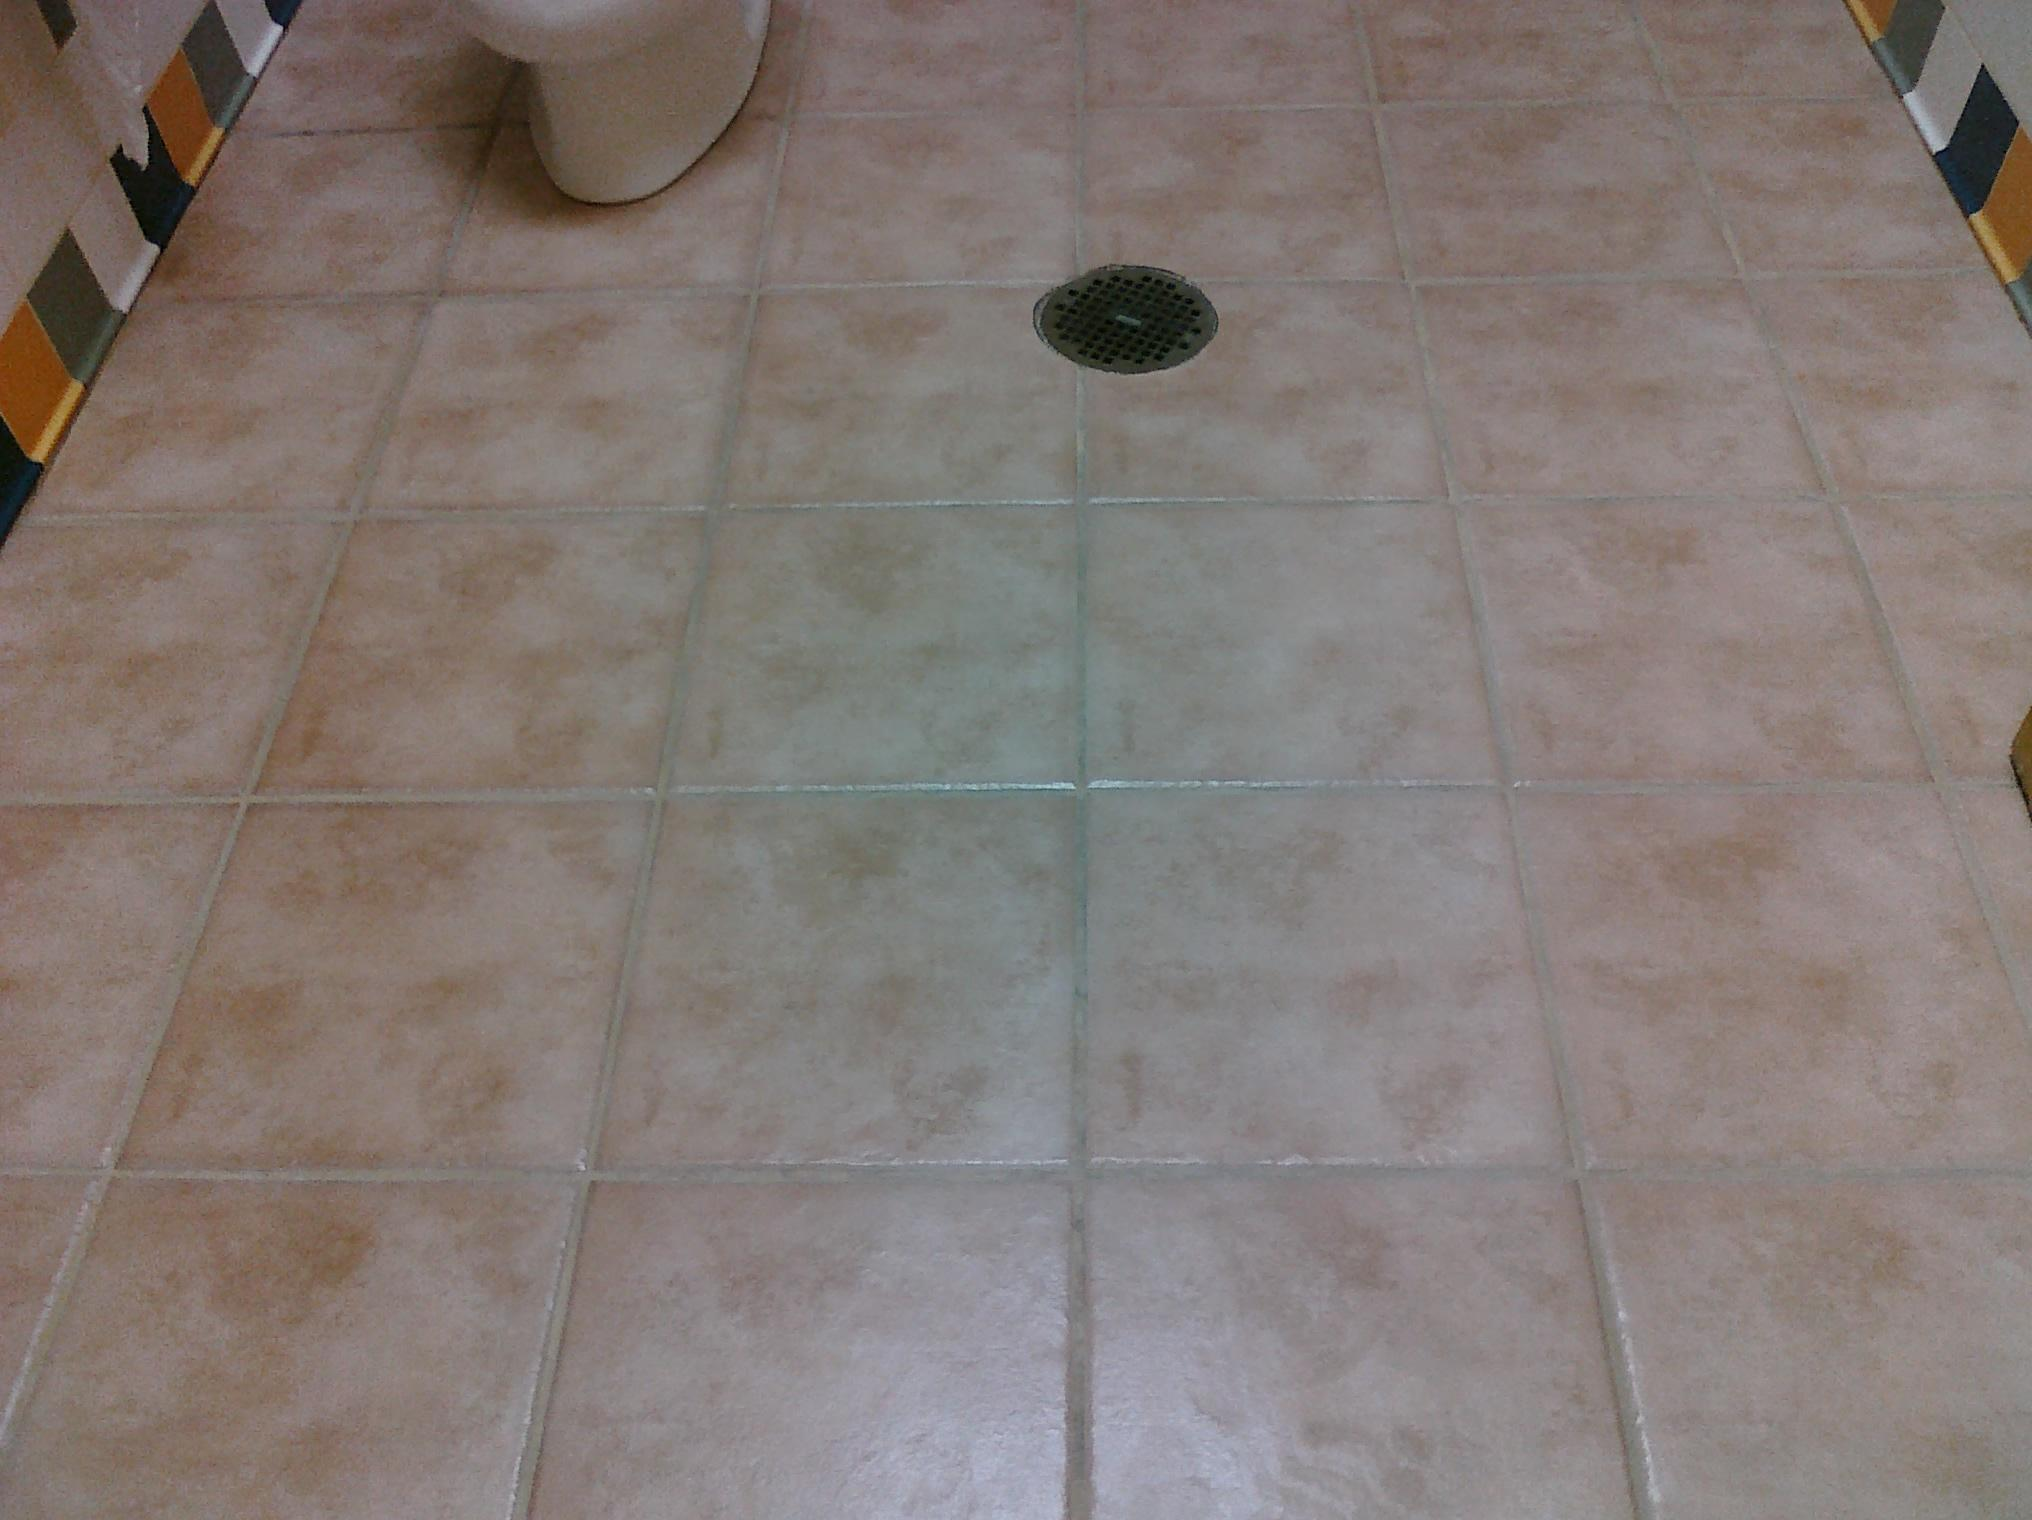 Green Cleaning Services LLC image 19